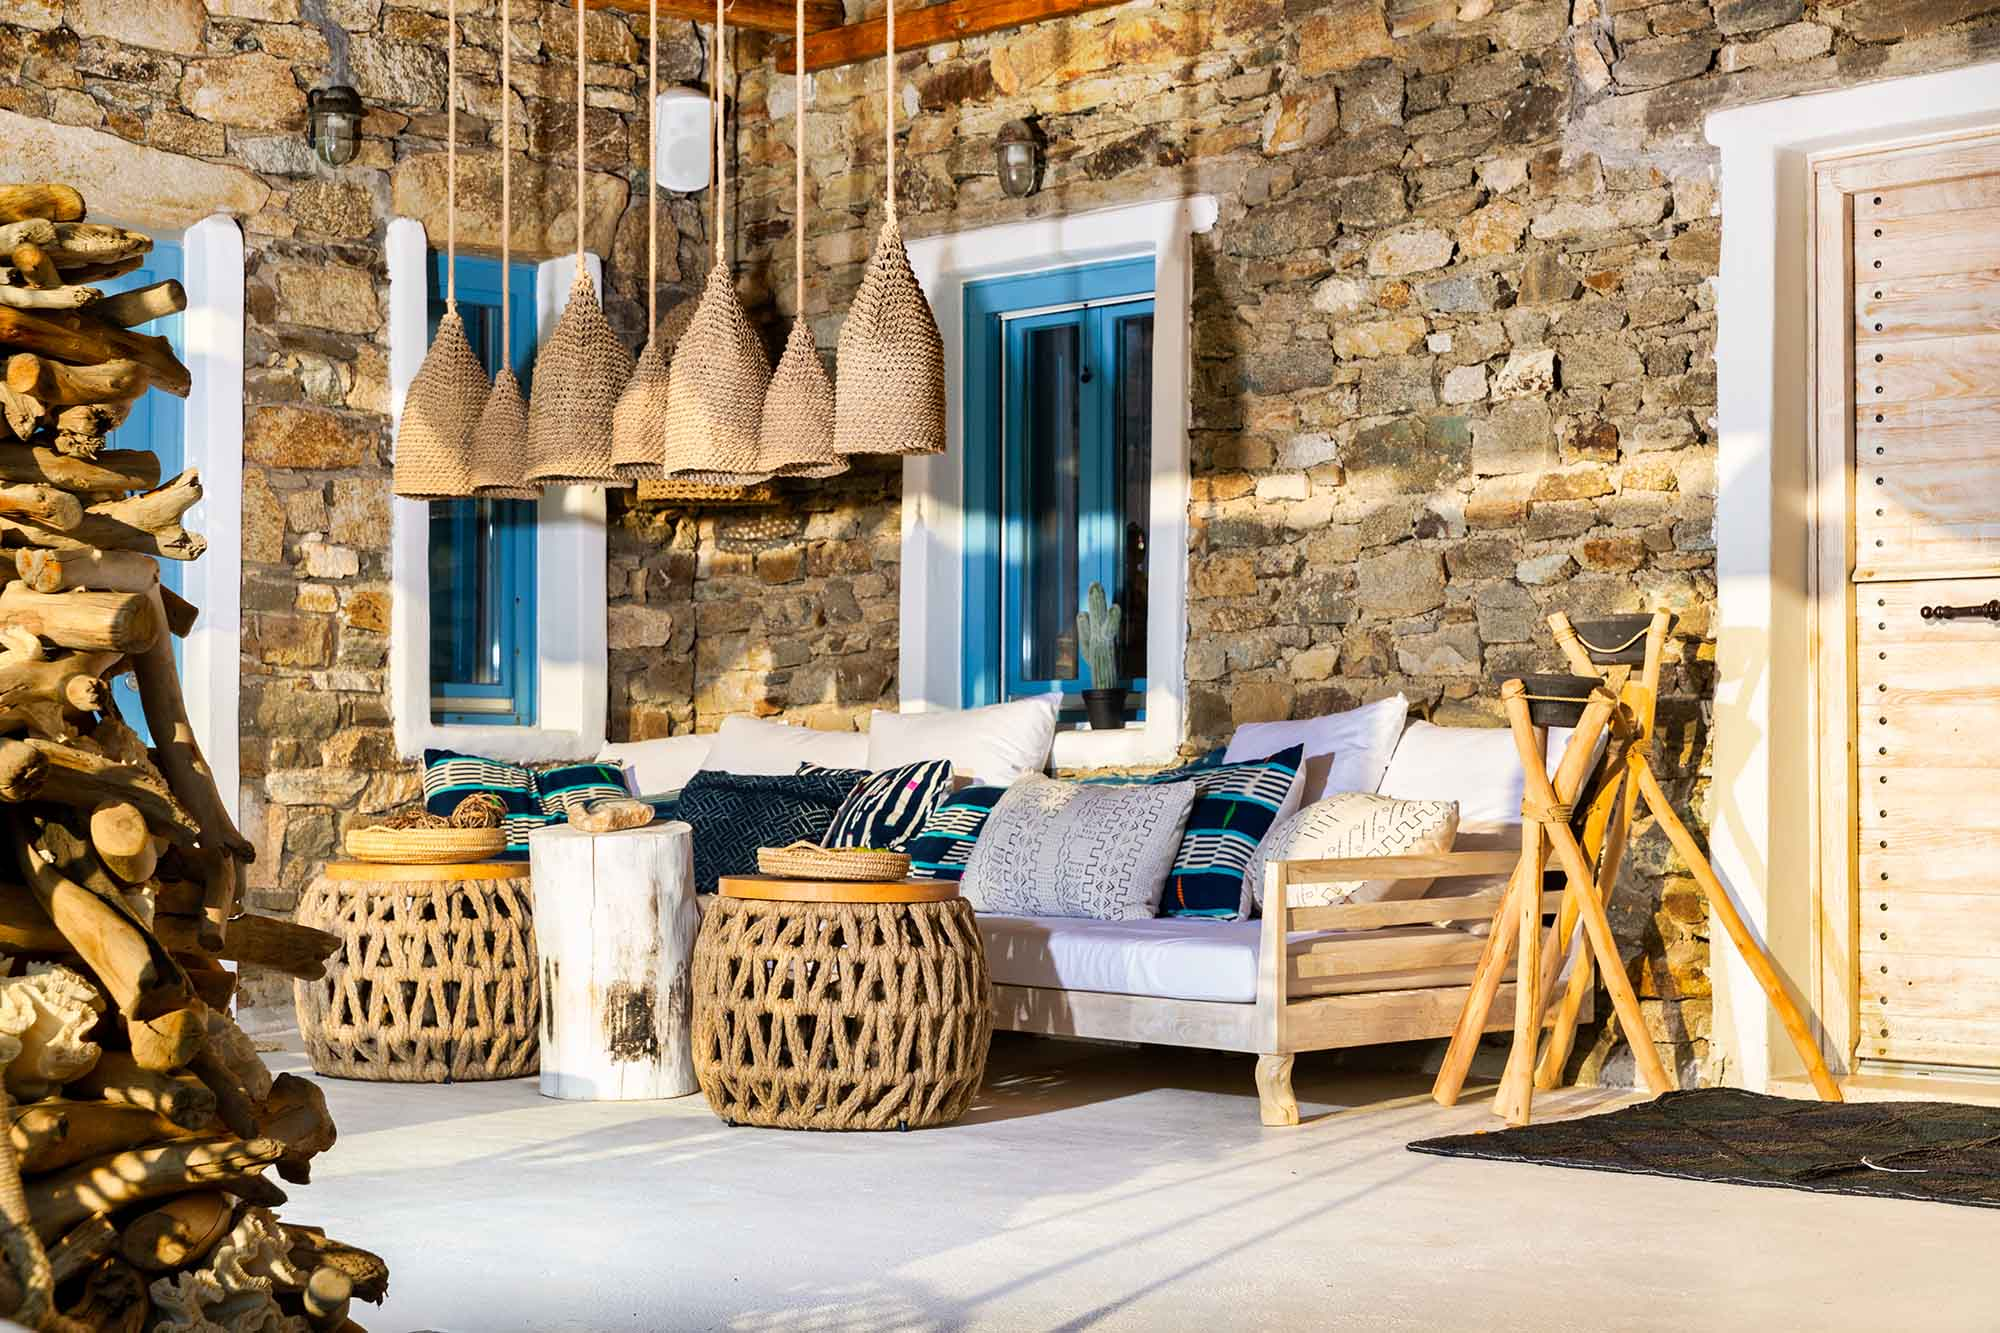 RENT A LUXURIOUS VILLA BY THE SEA IN MYKONOS - VILLA KARKOS - beautiful terrace